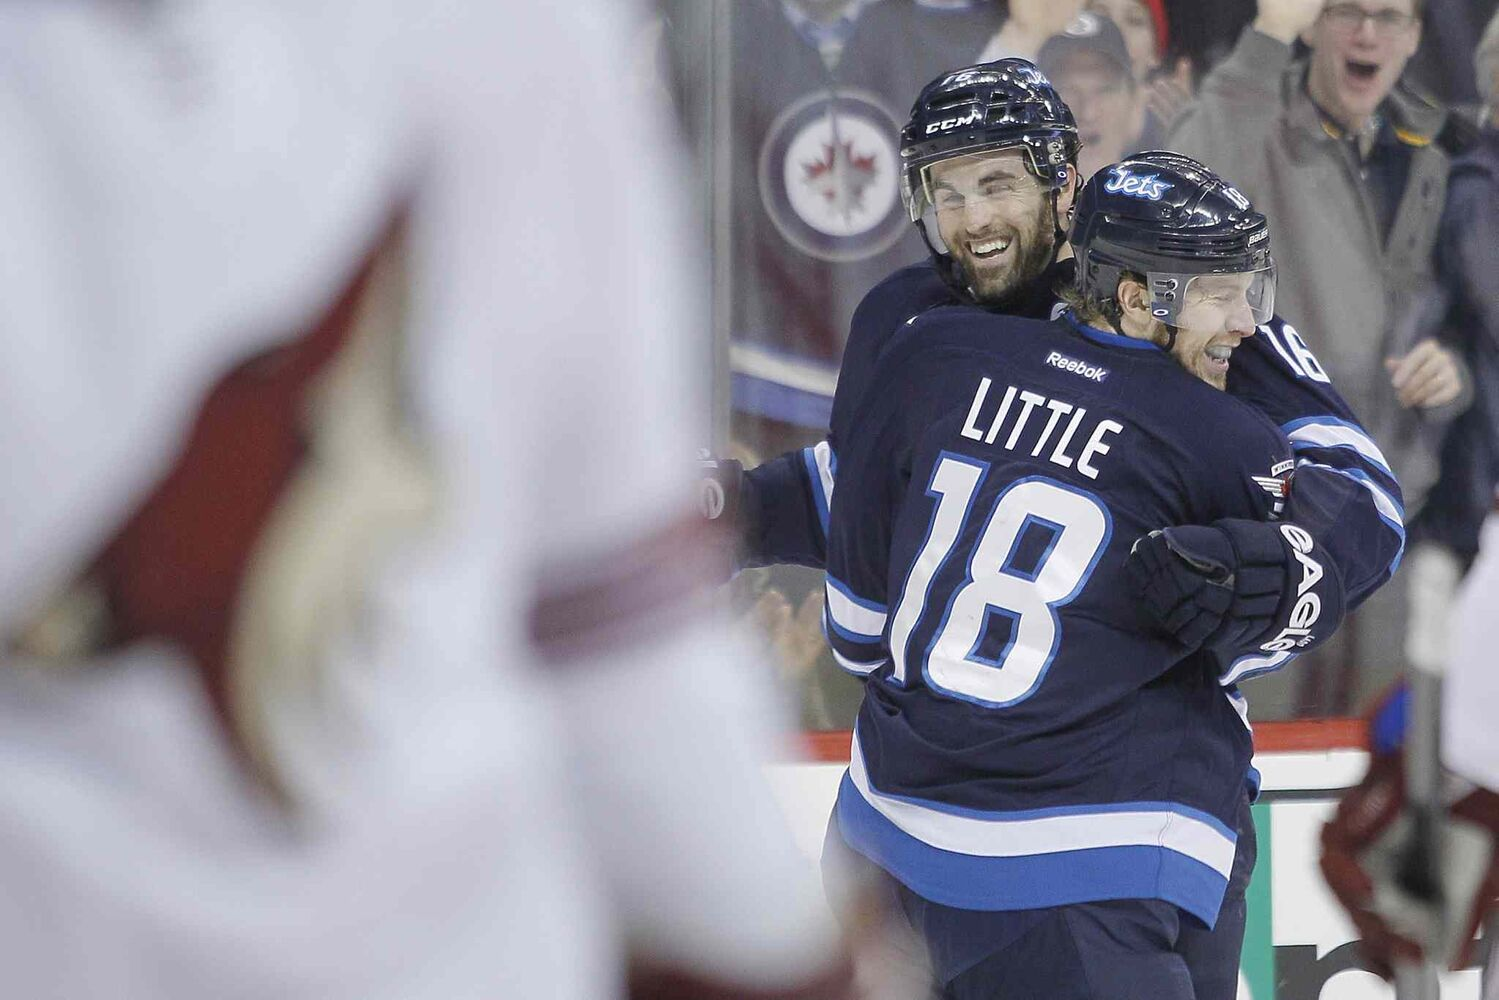 Winnipeg Jets' Bryan Little (18) and Andrew Ladd (16) celebrate Little's second-period goal against the Phoenix Coyotes Thursday.